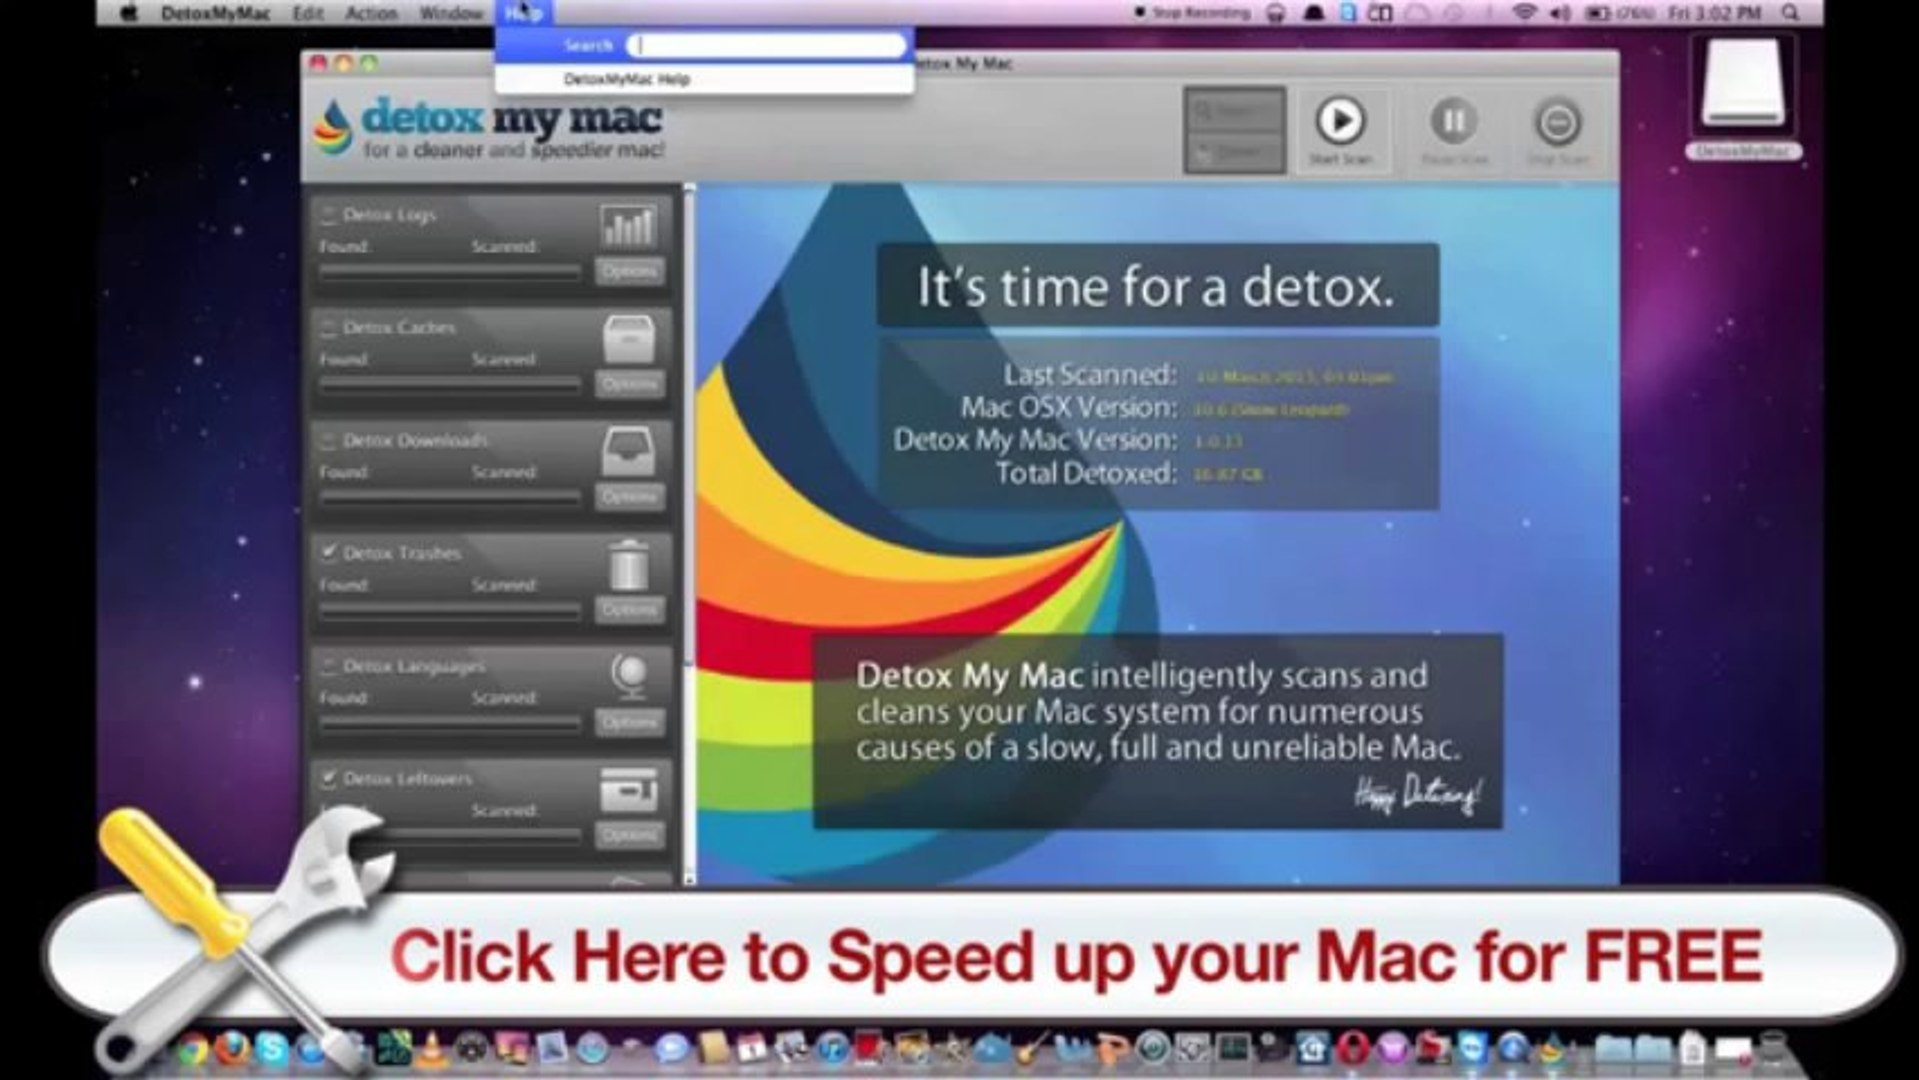 How To Speed Up My Mac - Detox My Mac Will Help You Speed Up Your Mac!